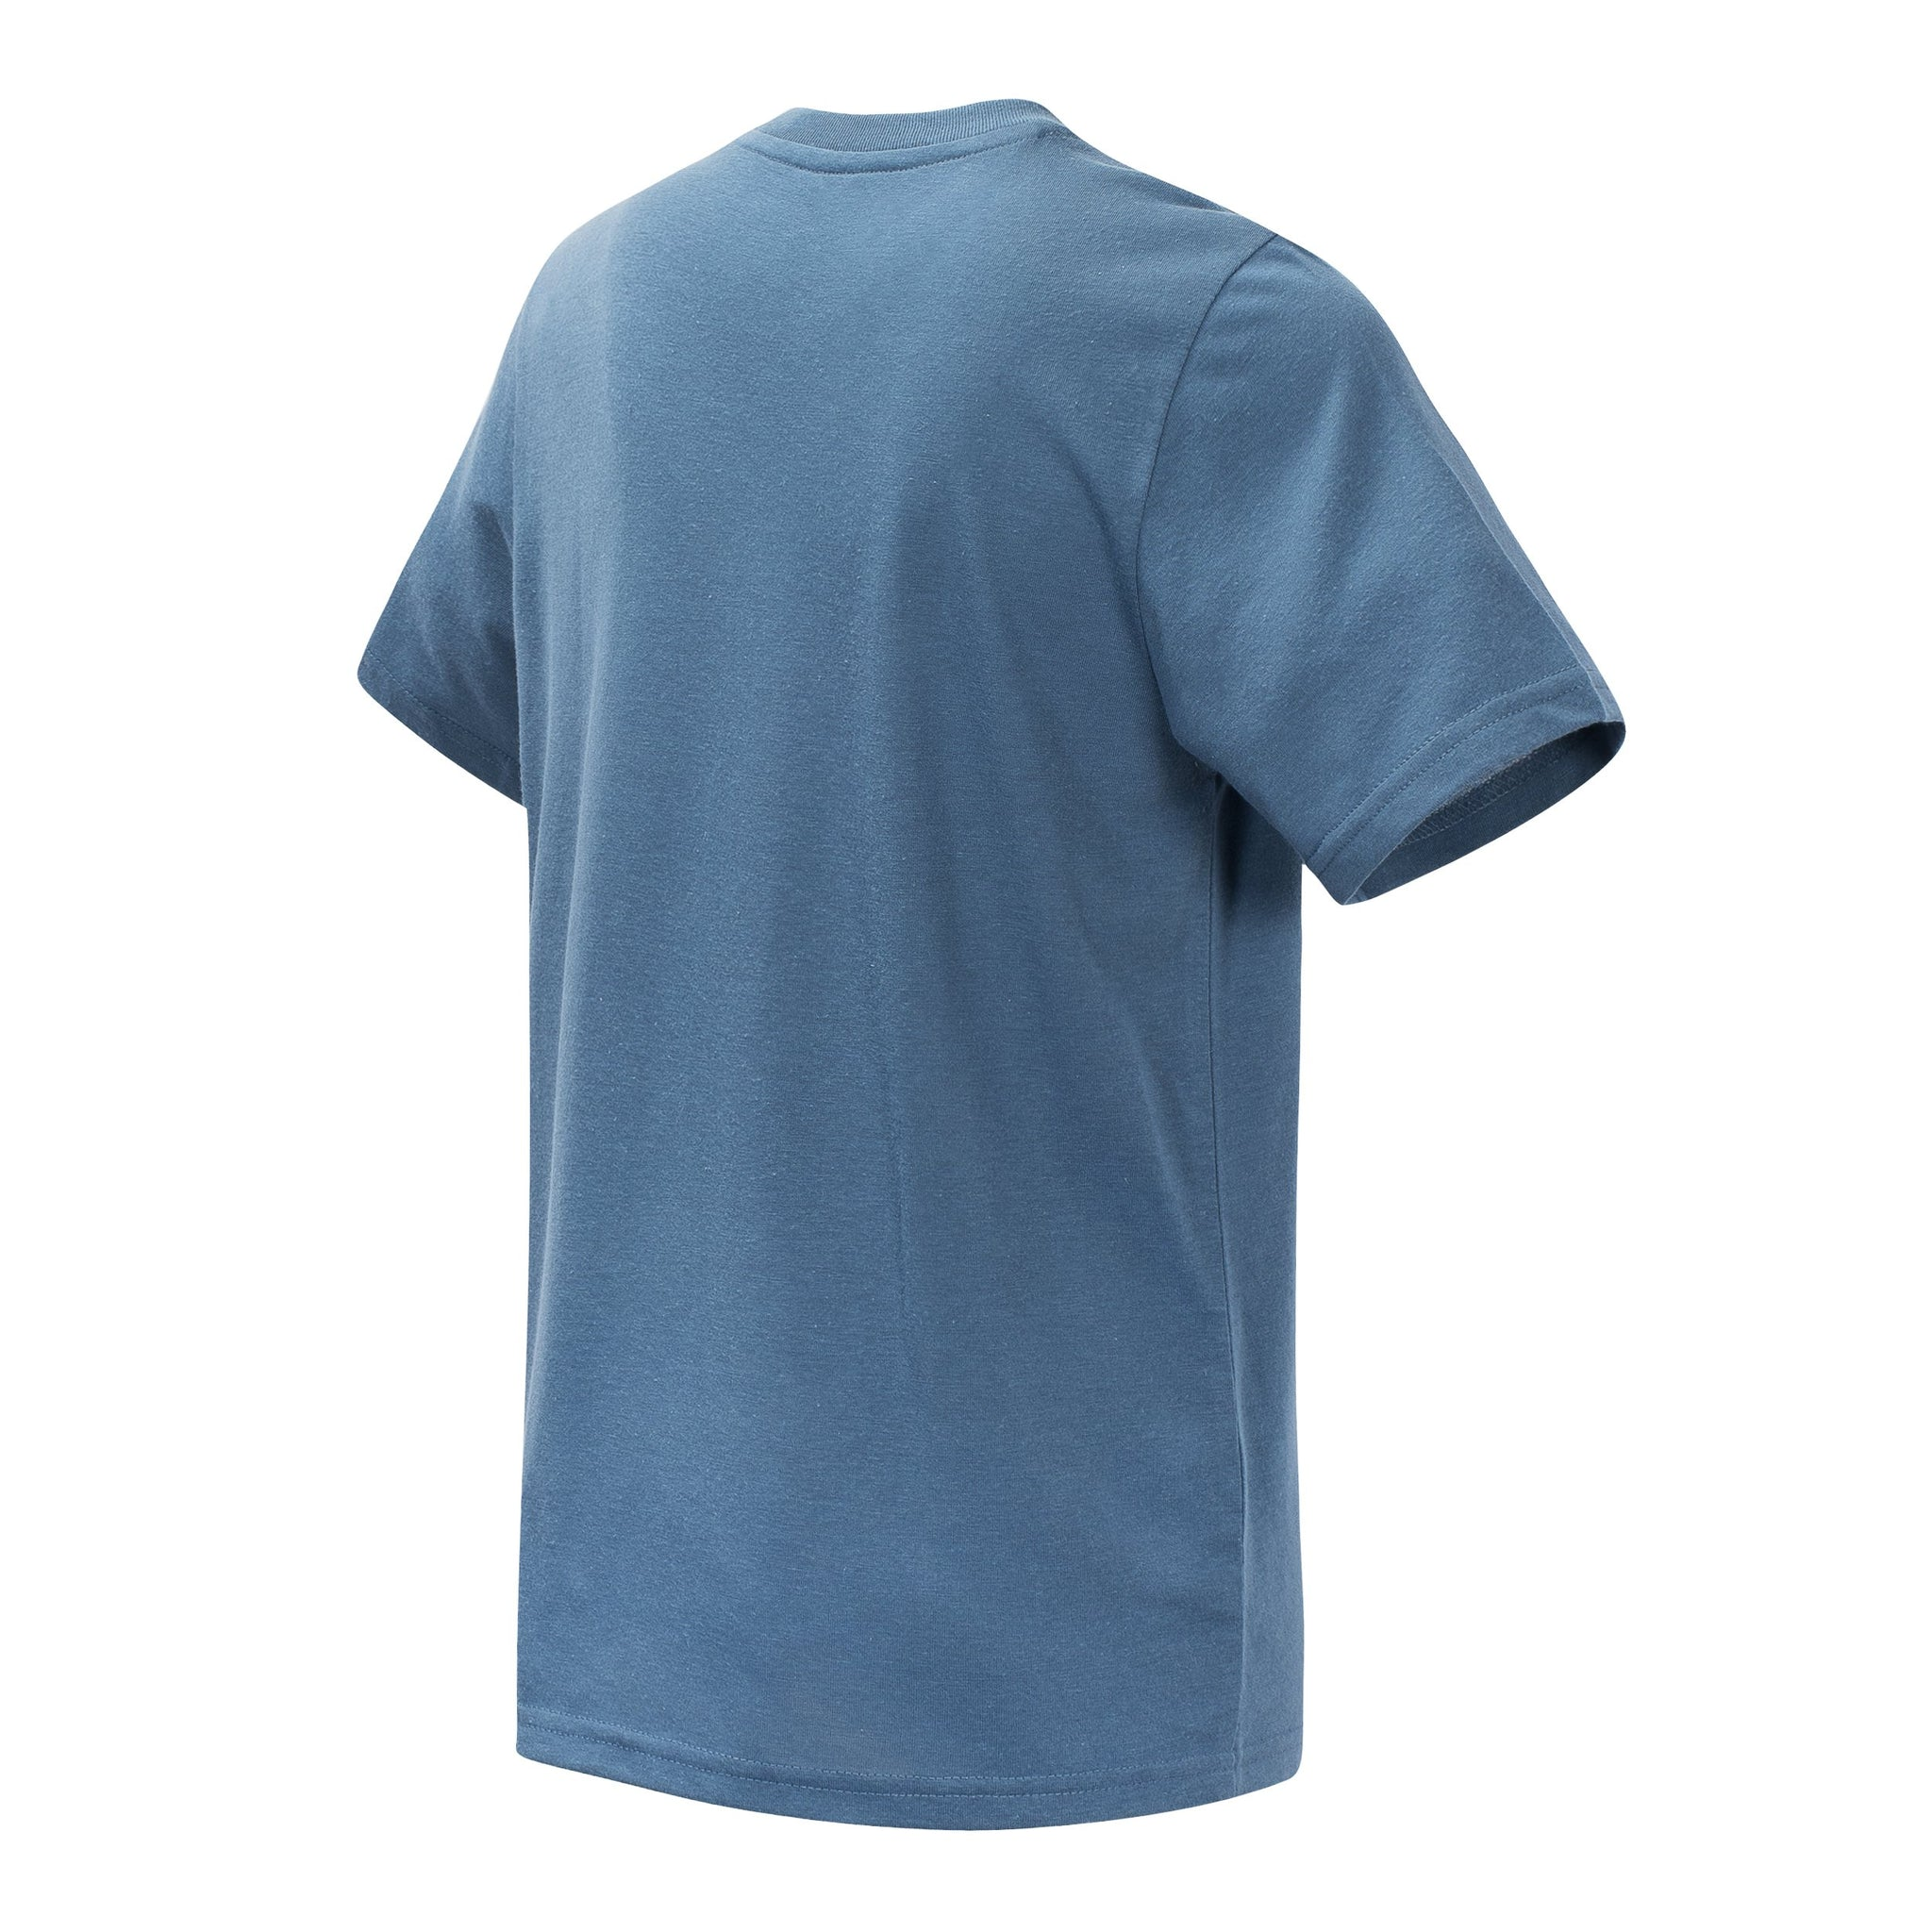 Boys' Chambray Short Sleeve Graphic Tee